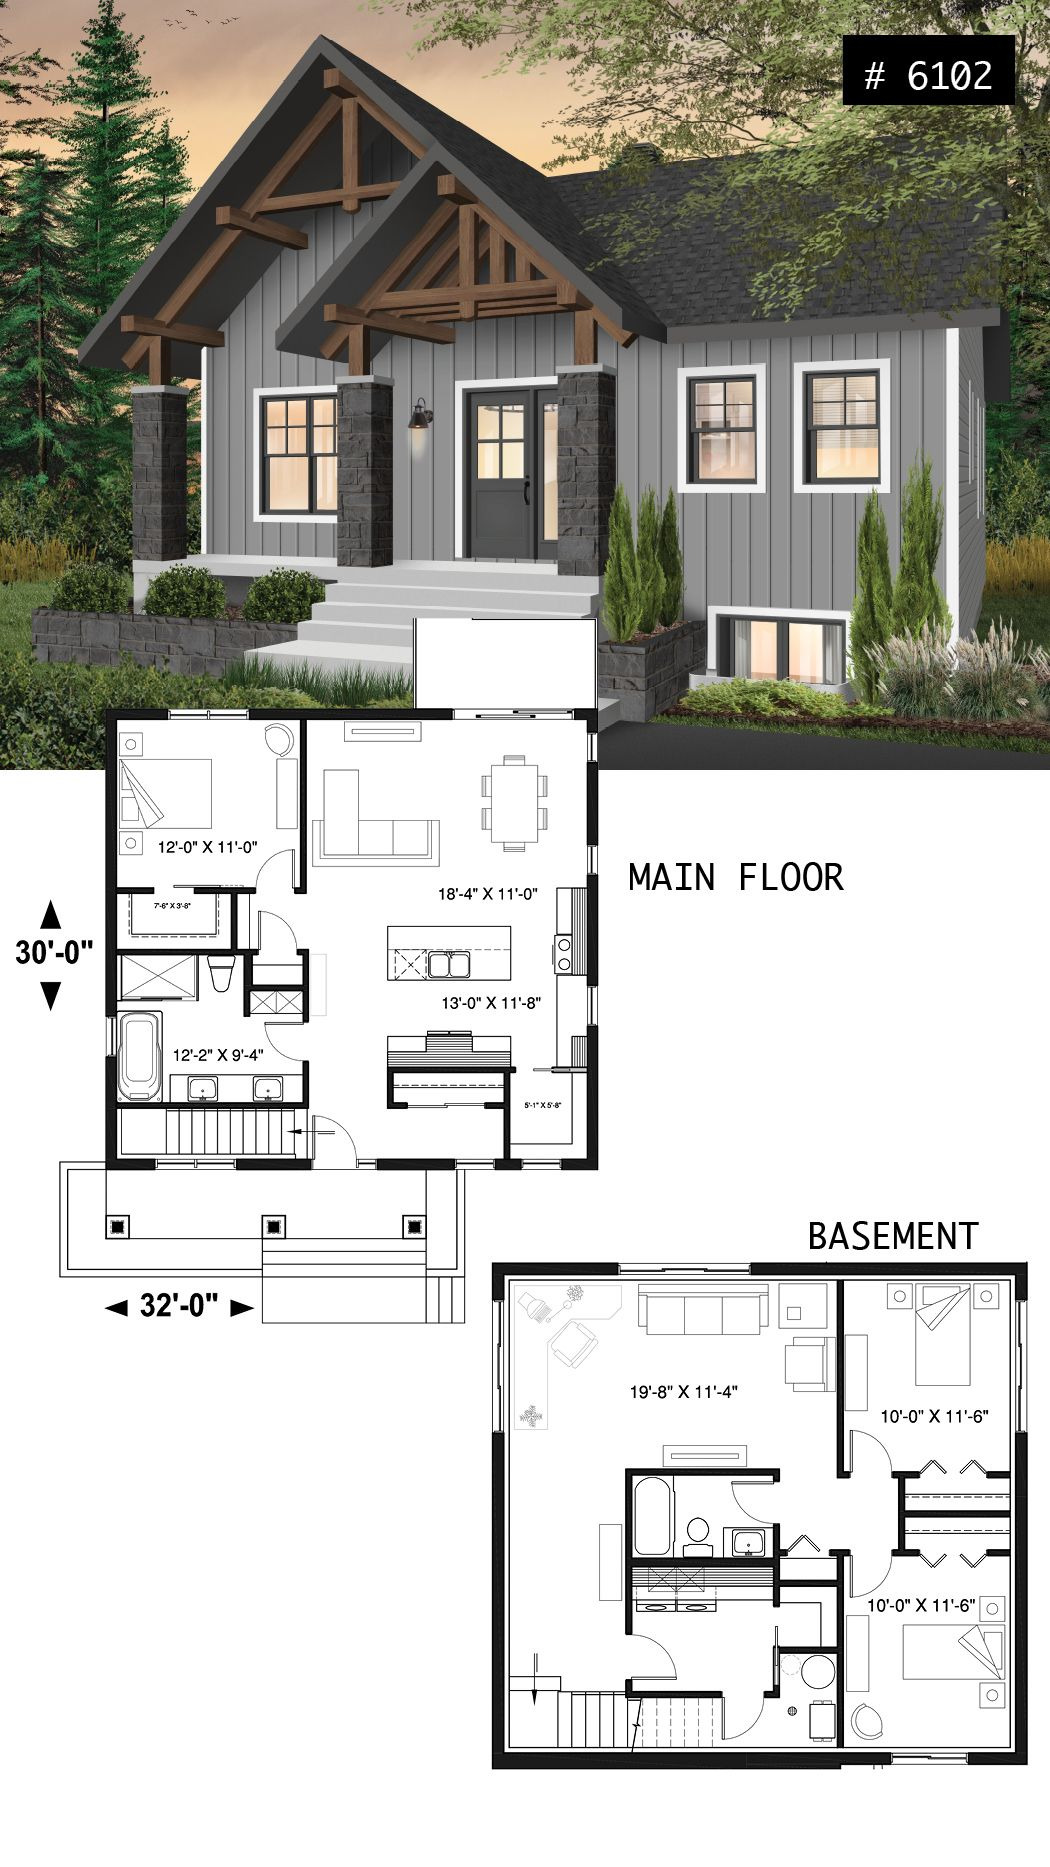 Open Concept Floor Plans for Small Homes Luxury House Plan nordika No 6102